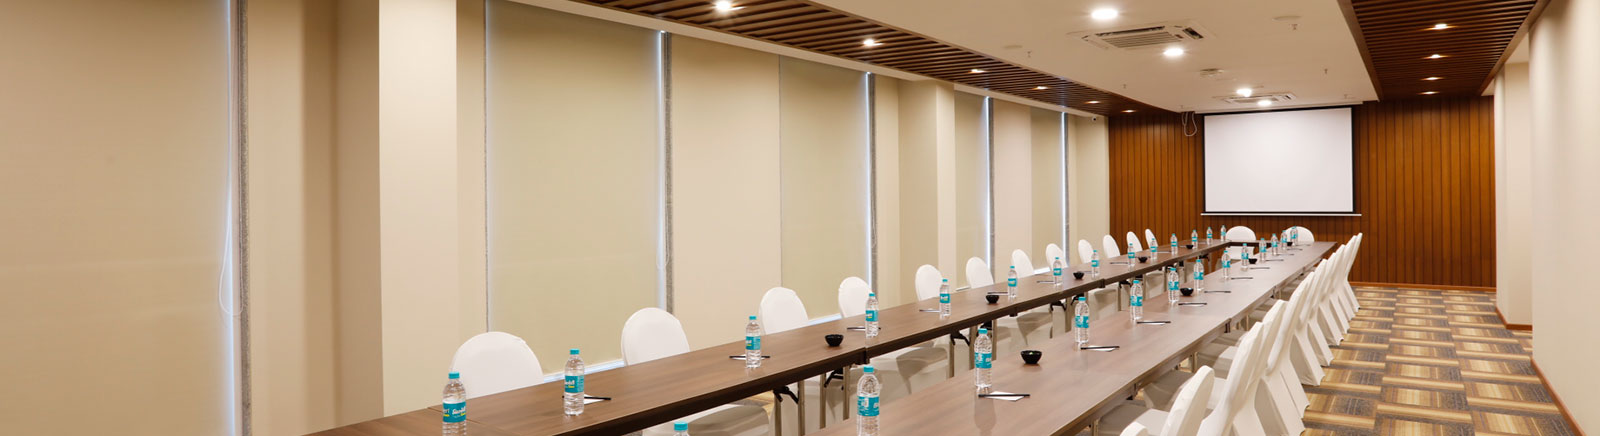 Ginger Hotel Sanand Services & Facilities